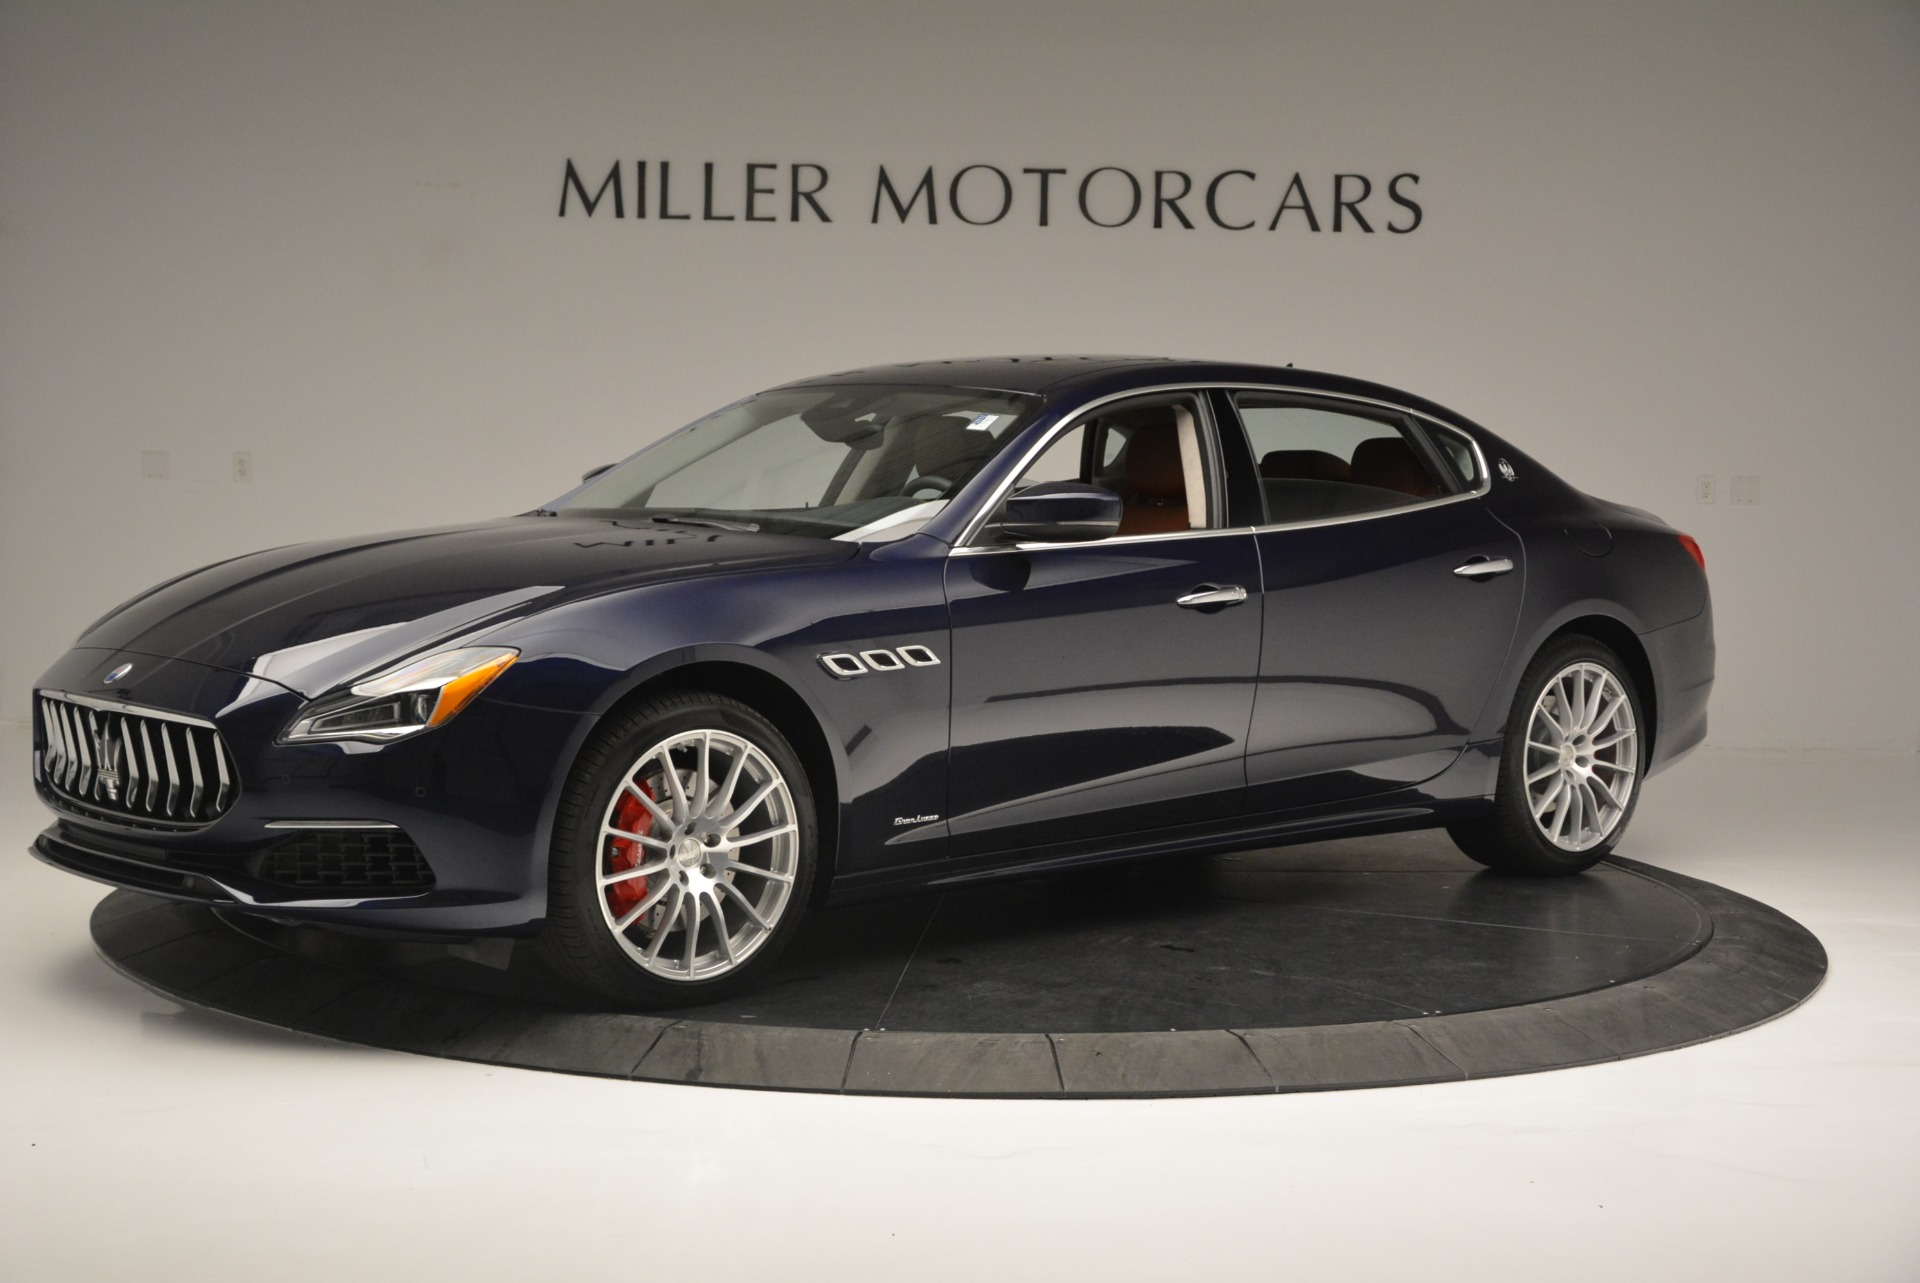 New 2018 Maserati Quattroporte S Q4 GranLusso For Sale In Greenwich, CT 1859_p2